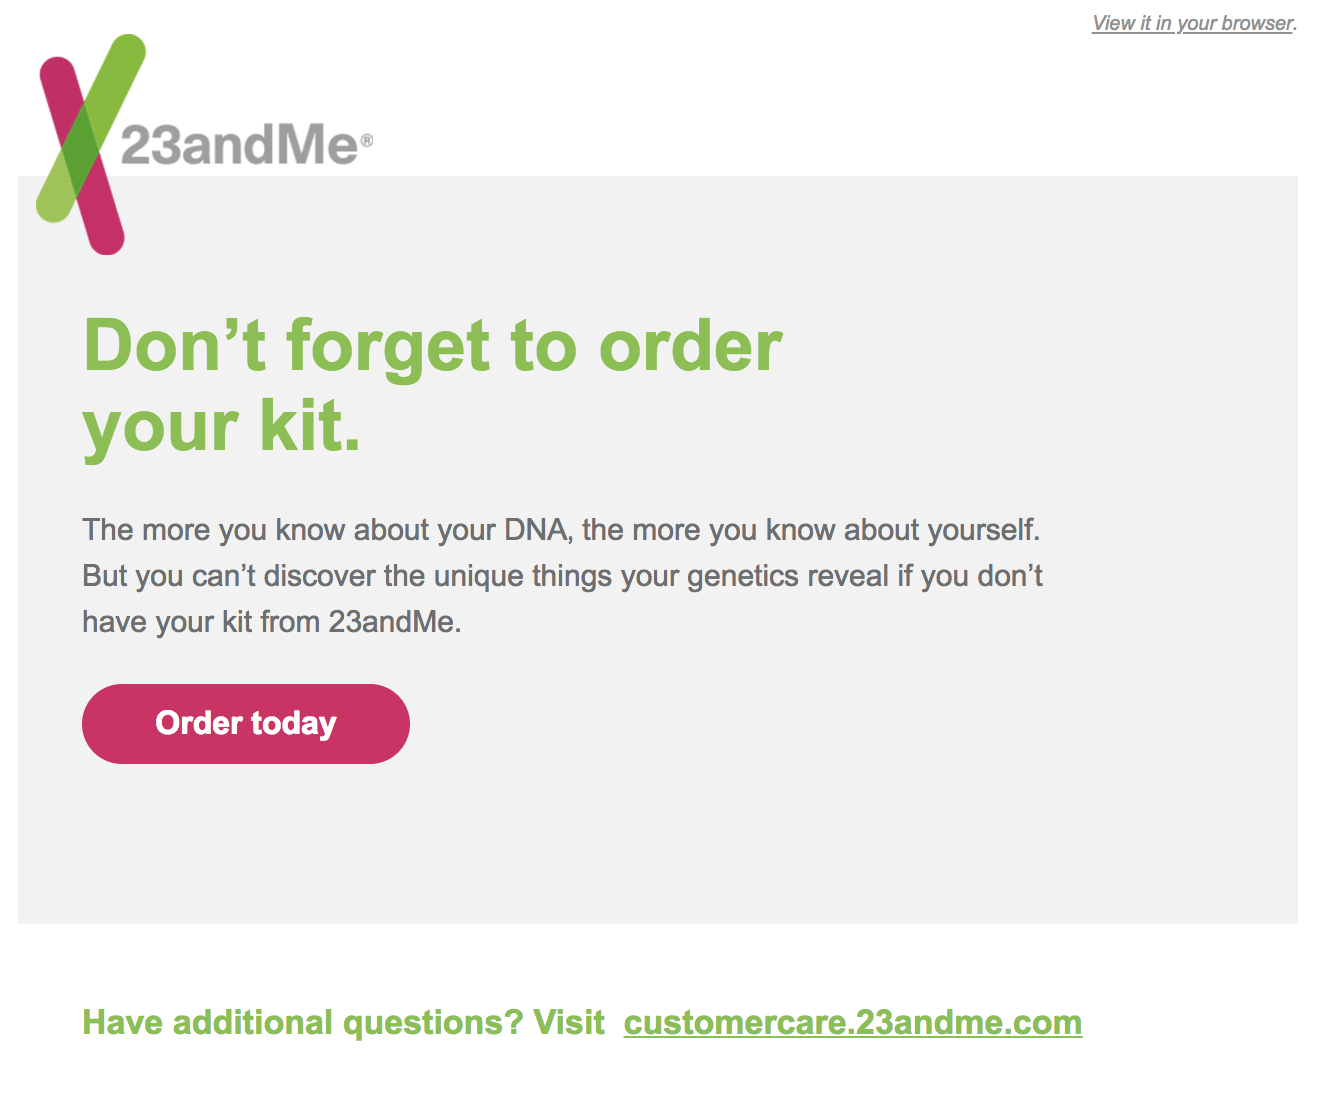 best transactional emails 23andMe